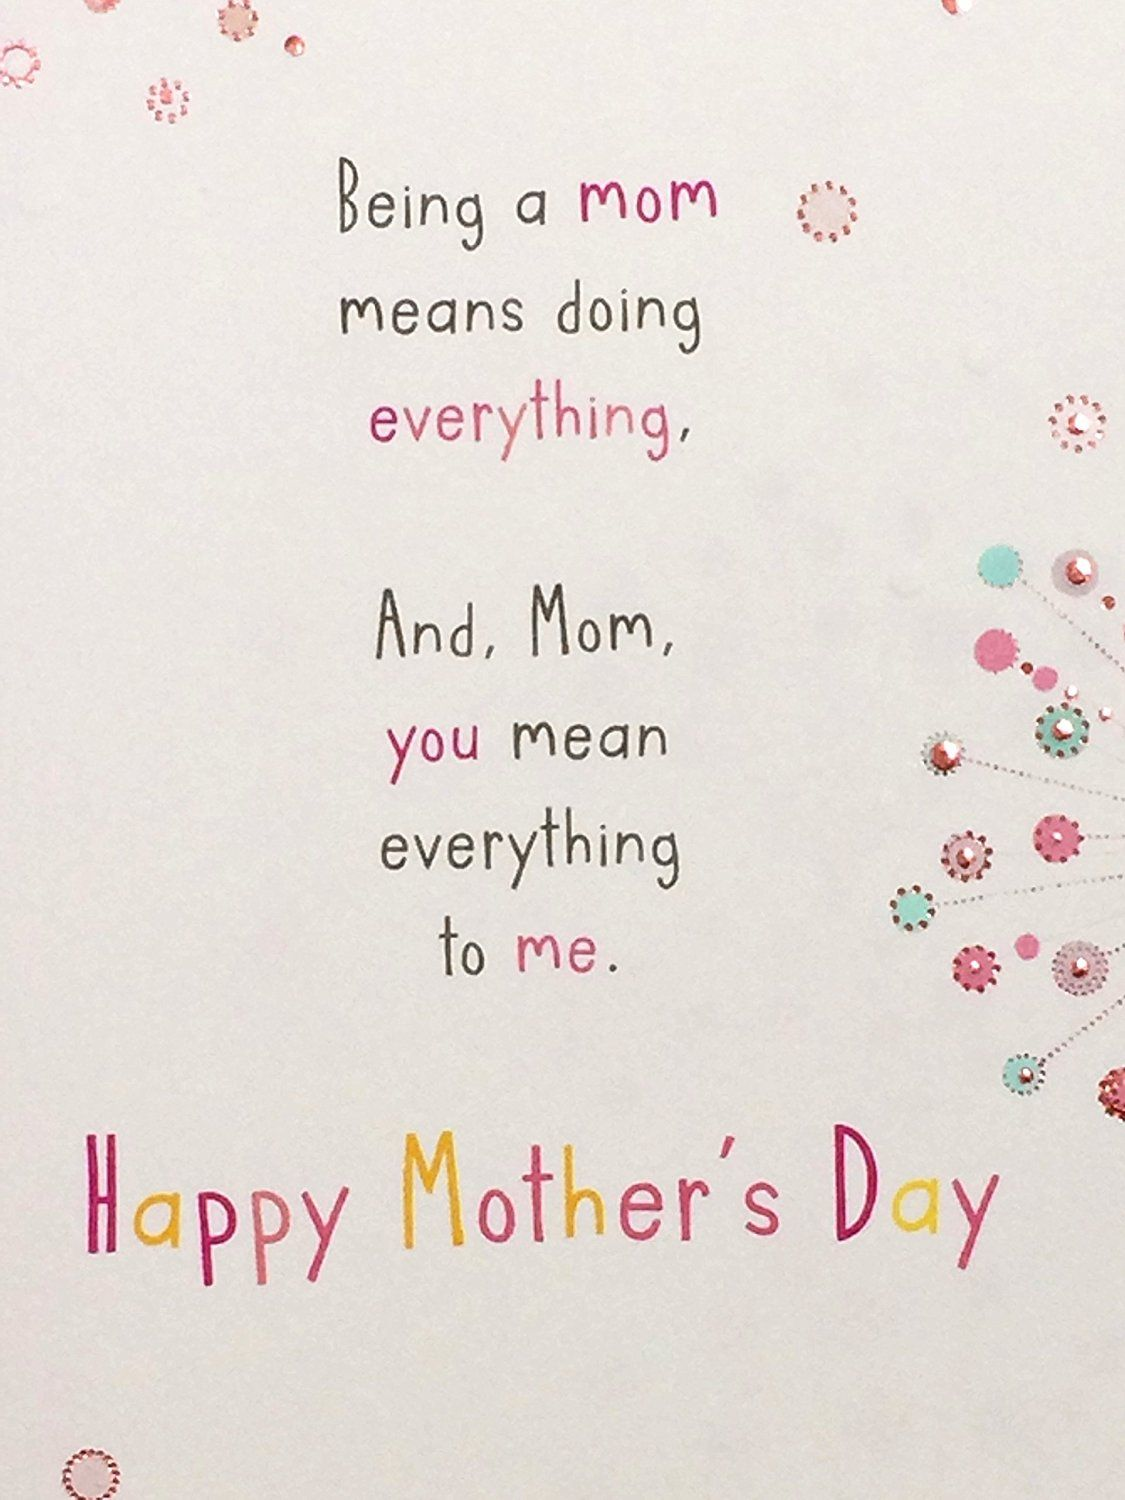 Amazon Com Mothers Day Card With Love Mom American Greetings Ea Office Products Mother Card American Greetings Mothers Day